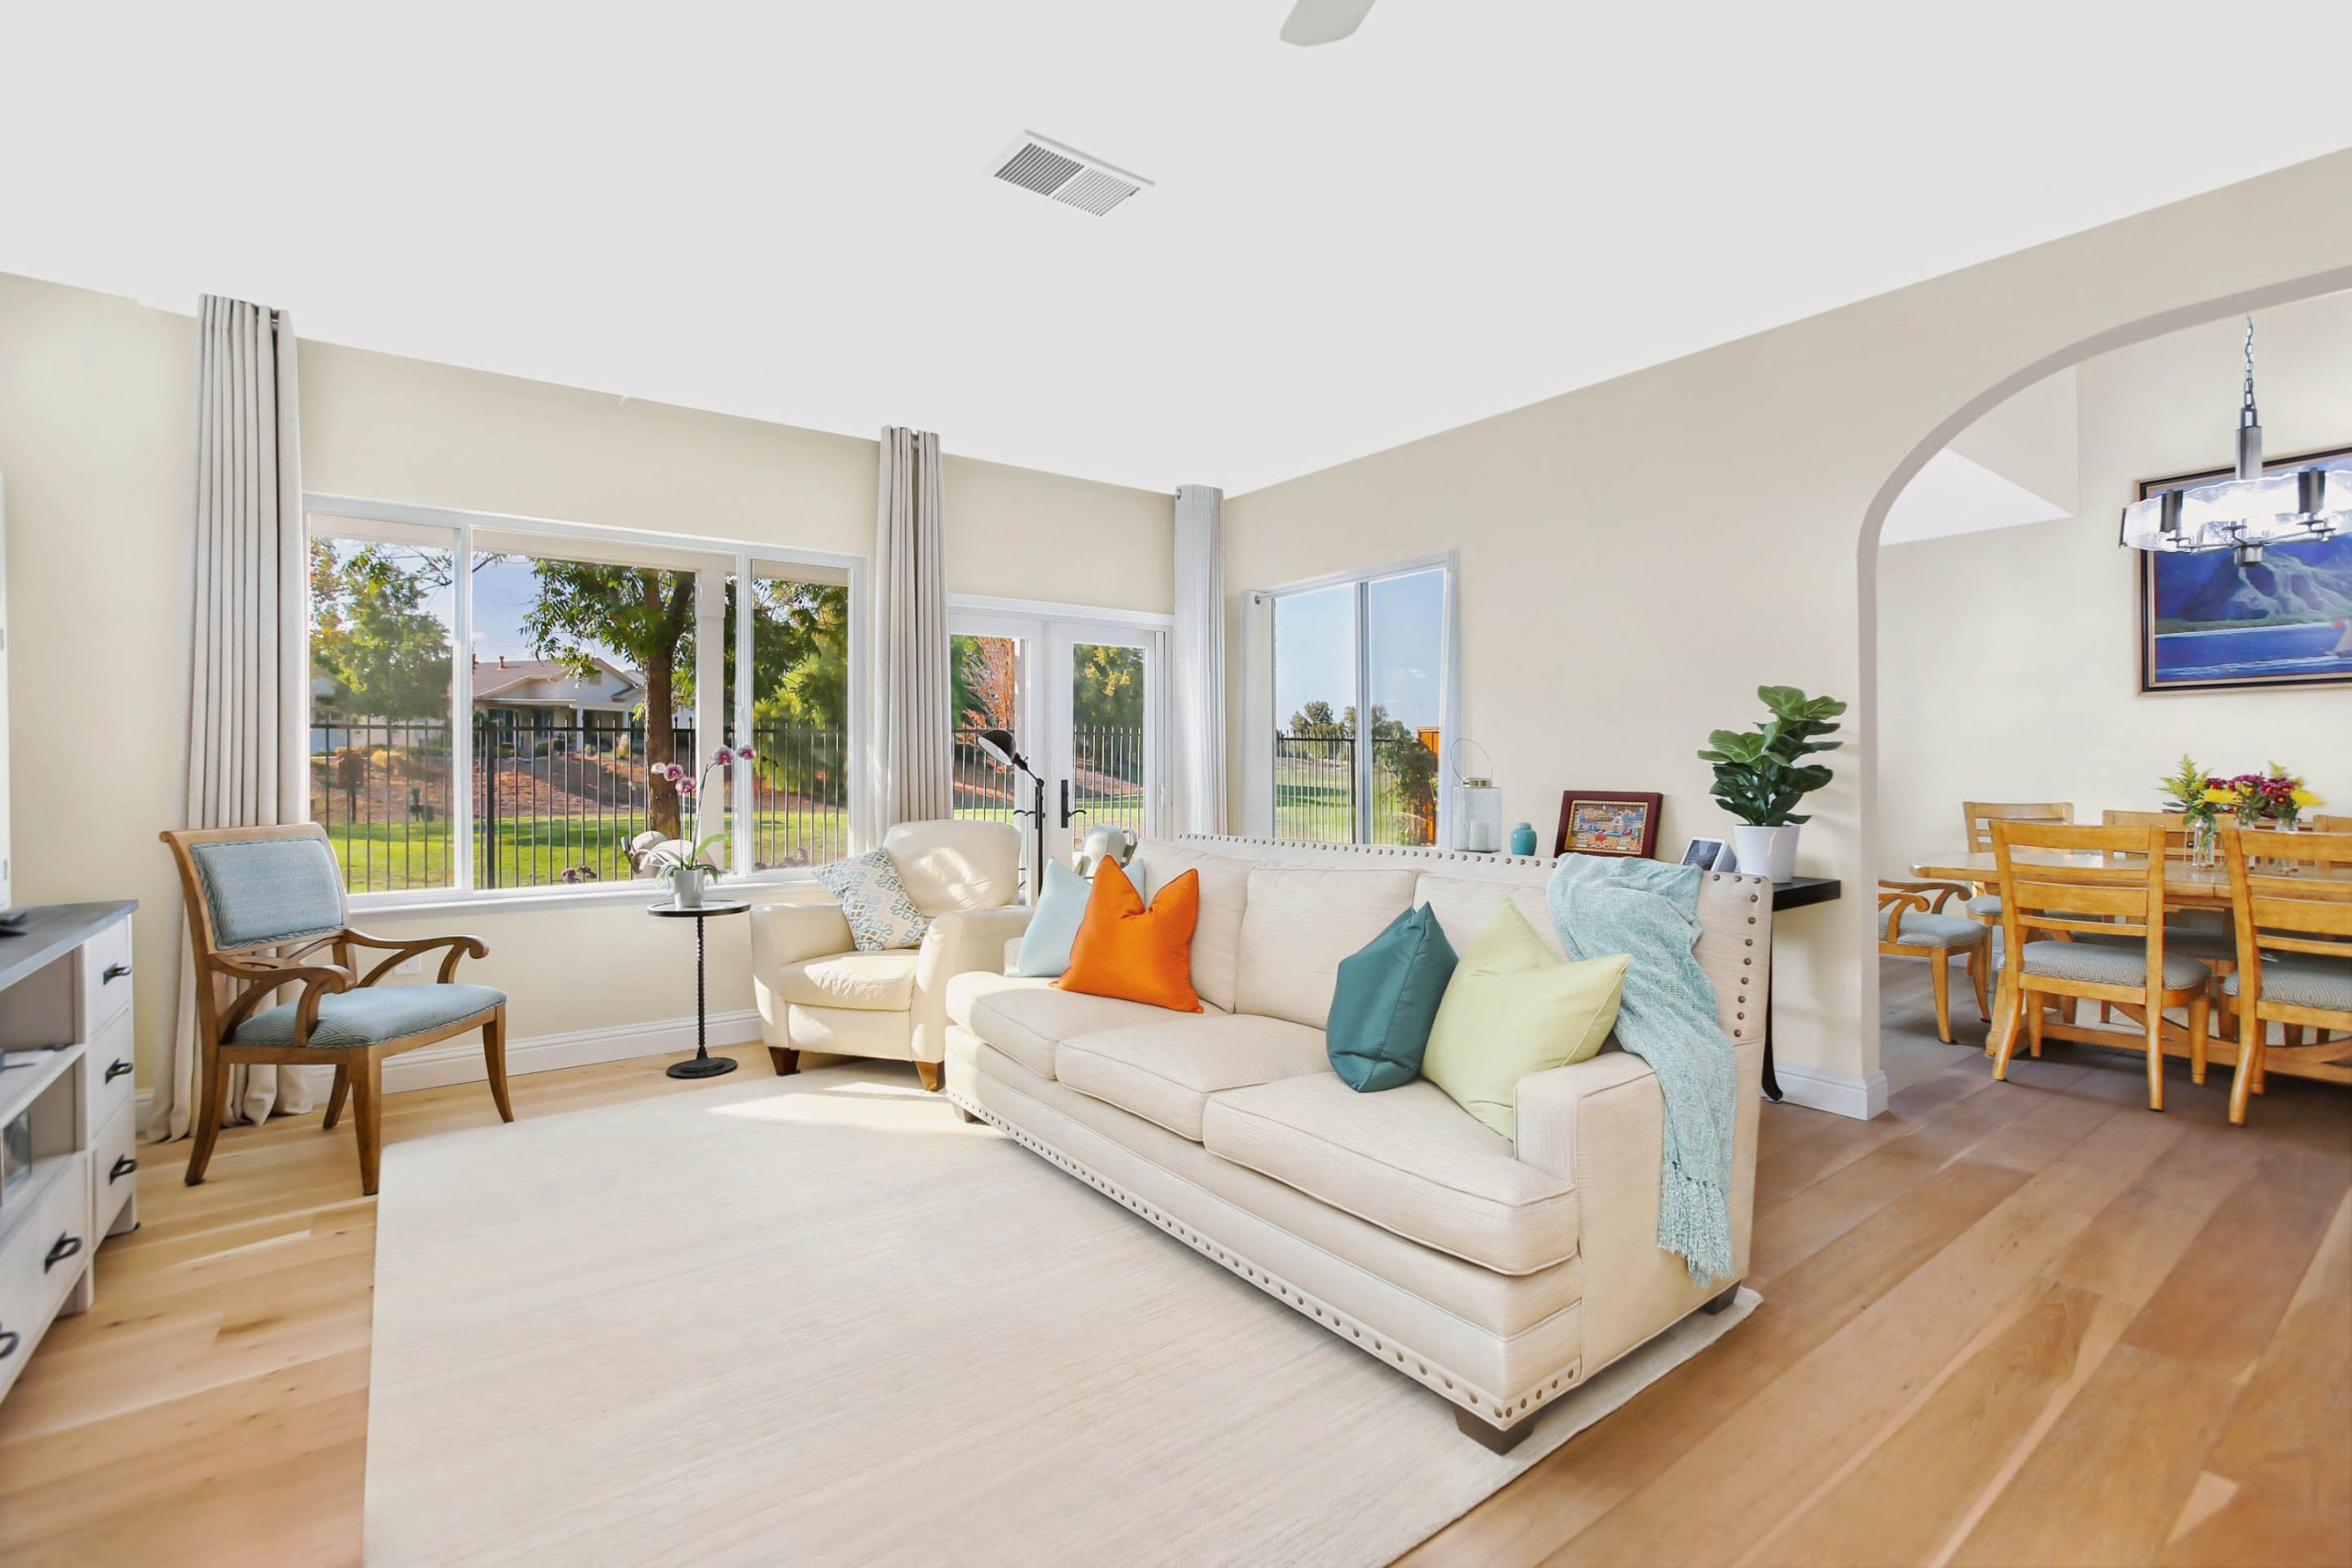 The 7-foot expansion to this family room gives the homeowner more natural light and a better view of their golf course.